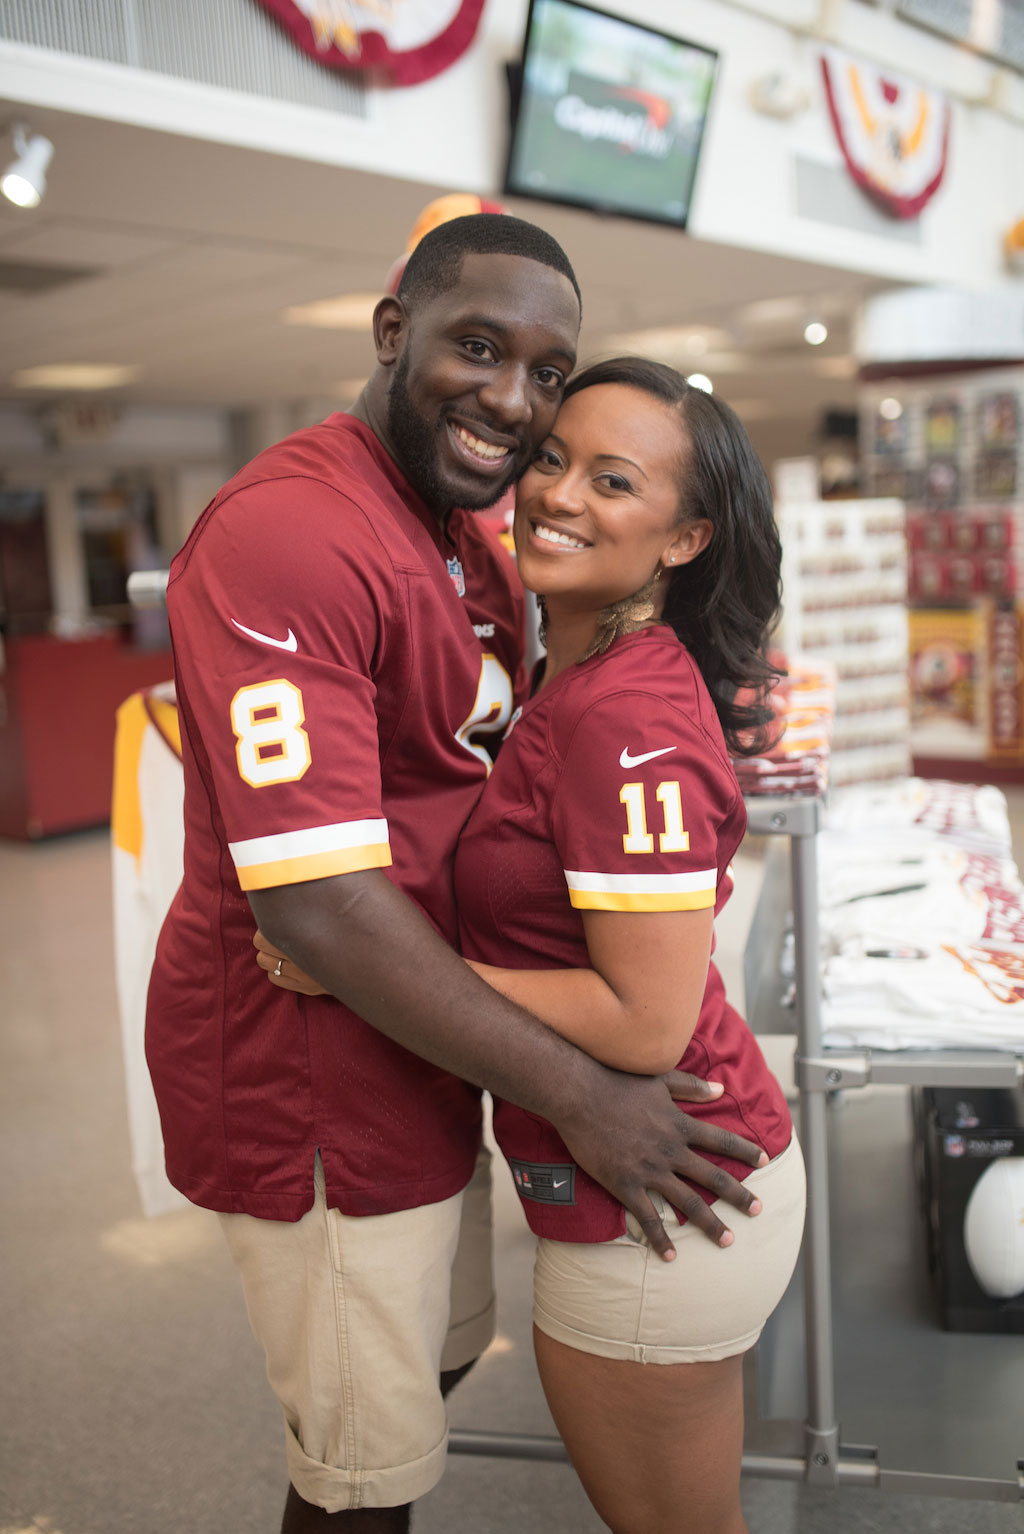 8-10-16-redskins-football-nfl-engagement-photos-dc-4